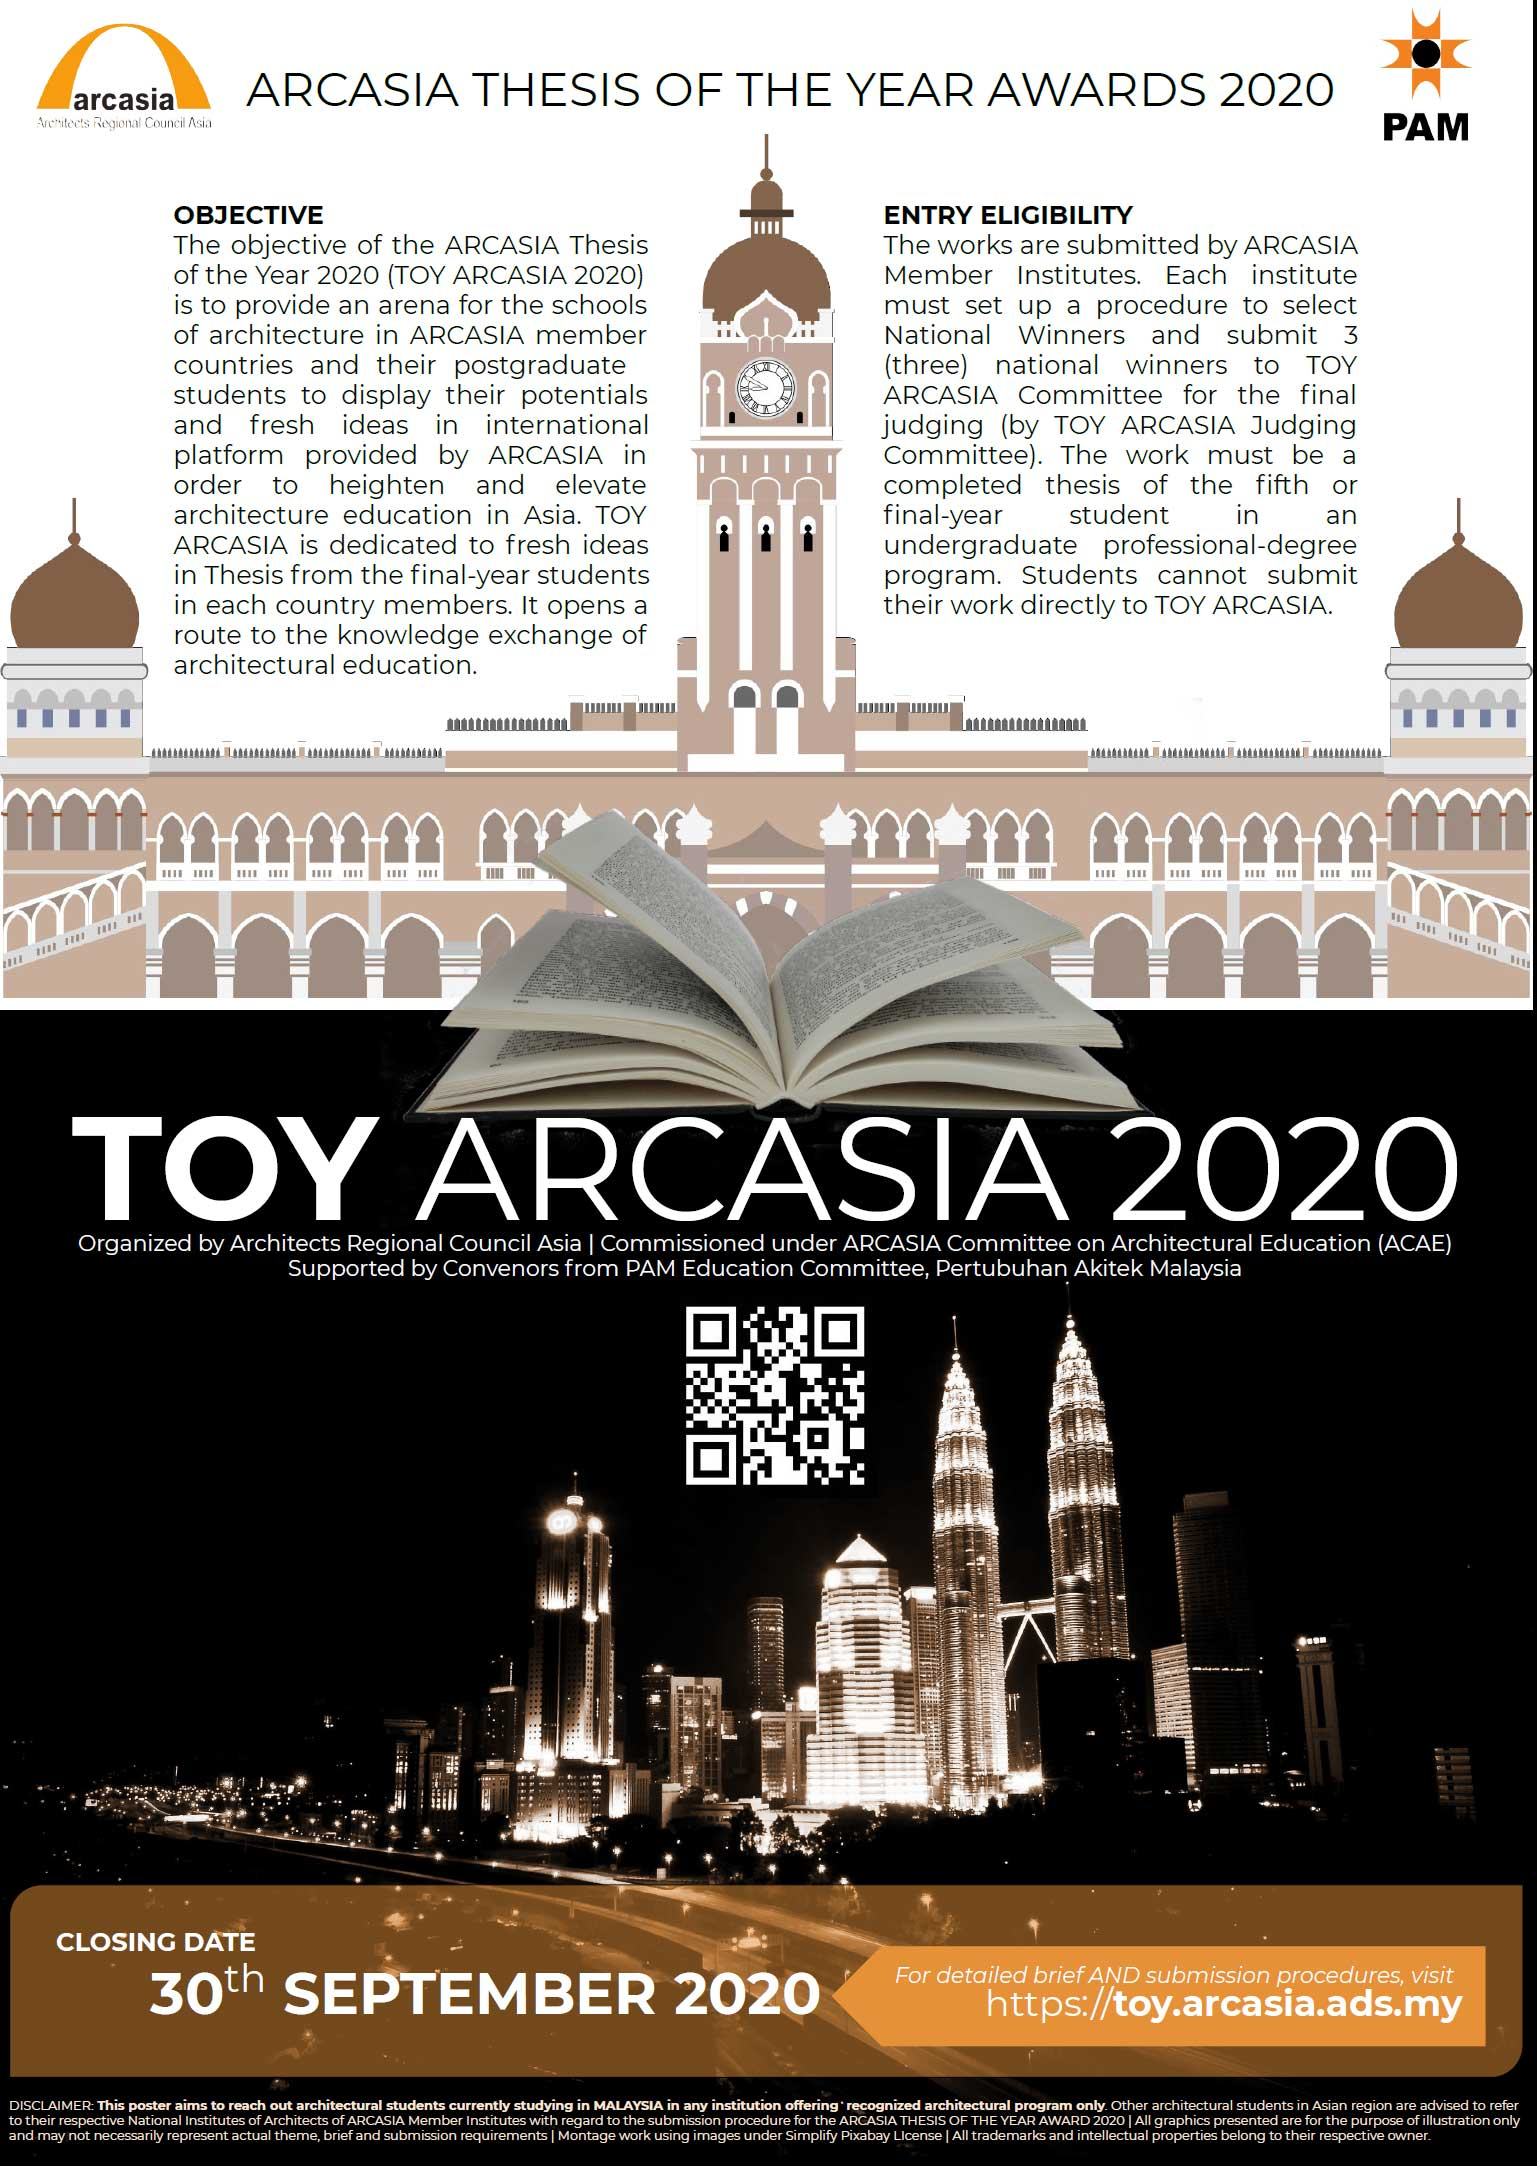 ARCASIA Thesis Of The Year Awards 2020